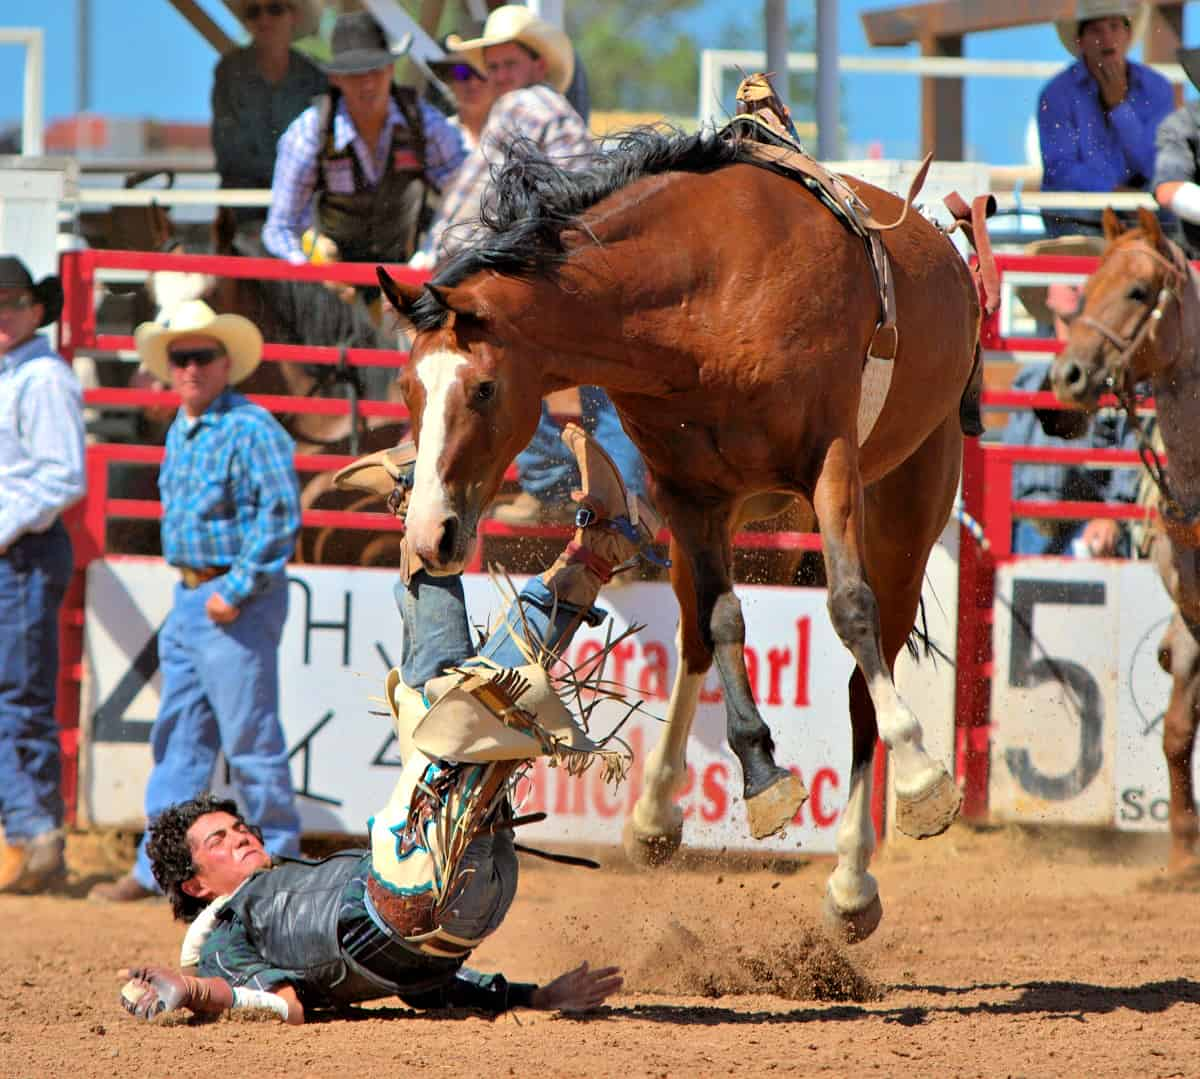 Cowboy falling off horse at Sonoita Rodeo